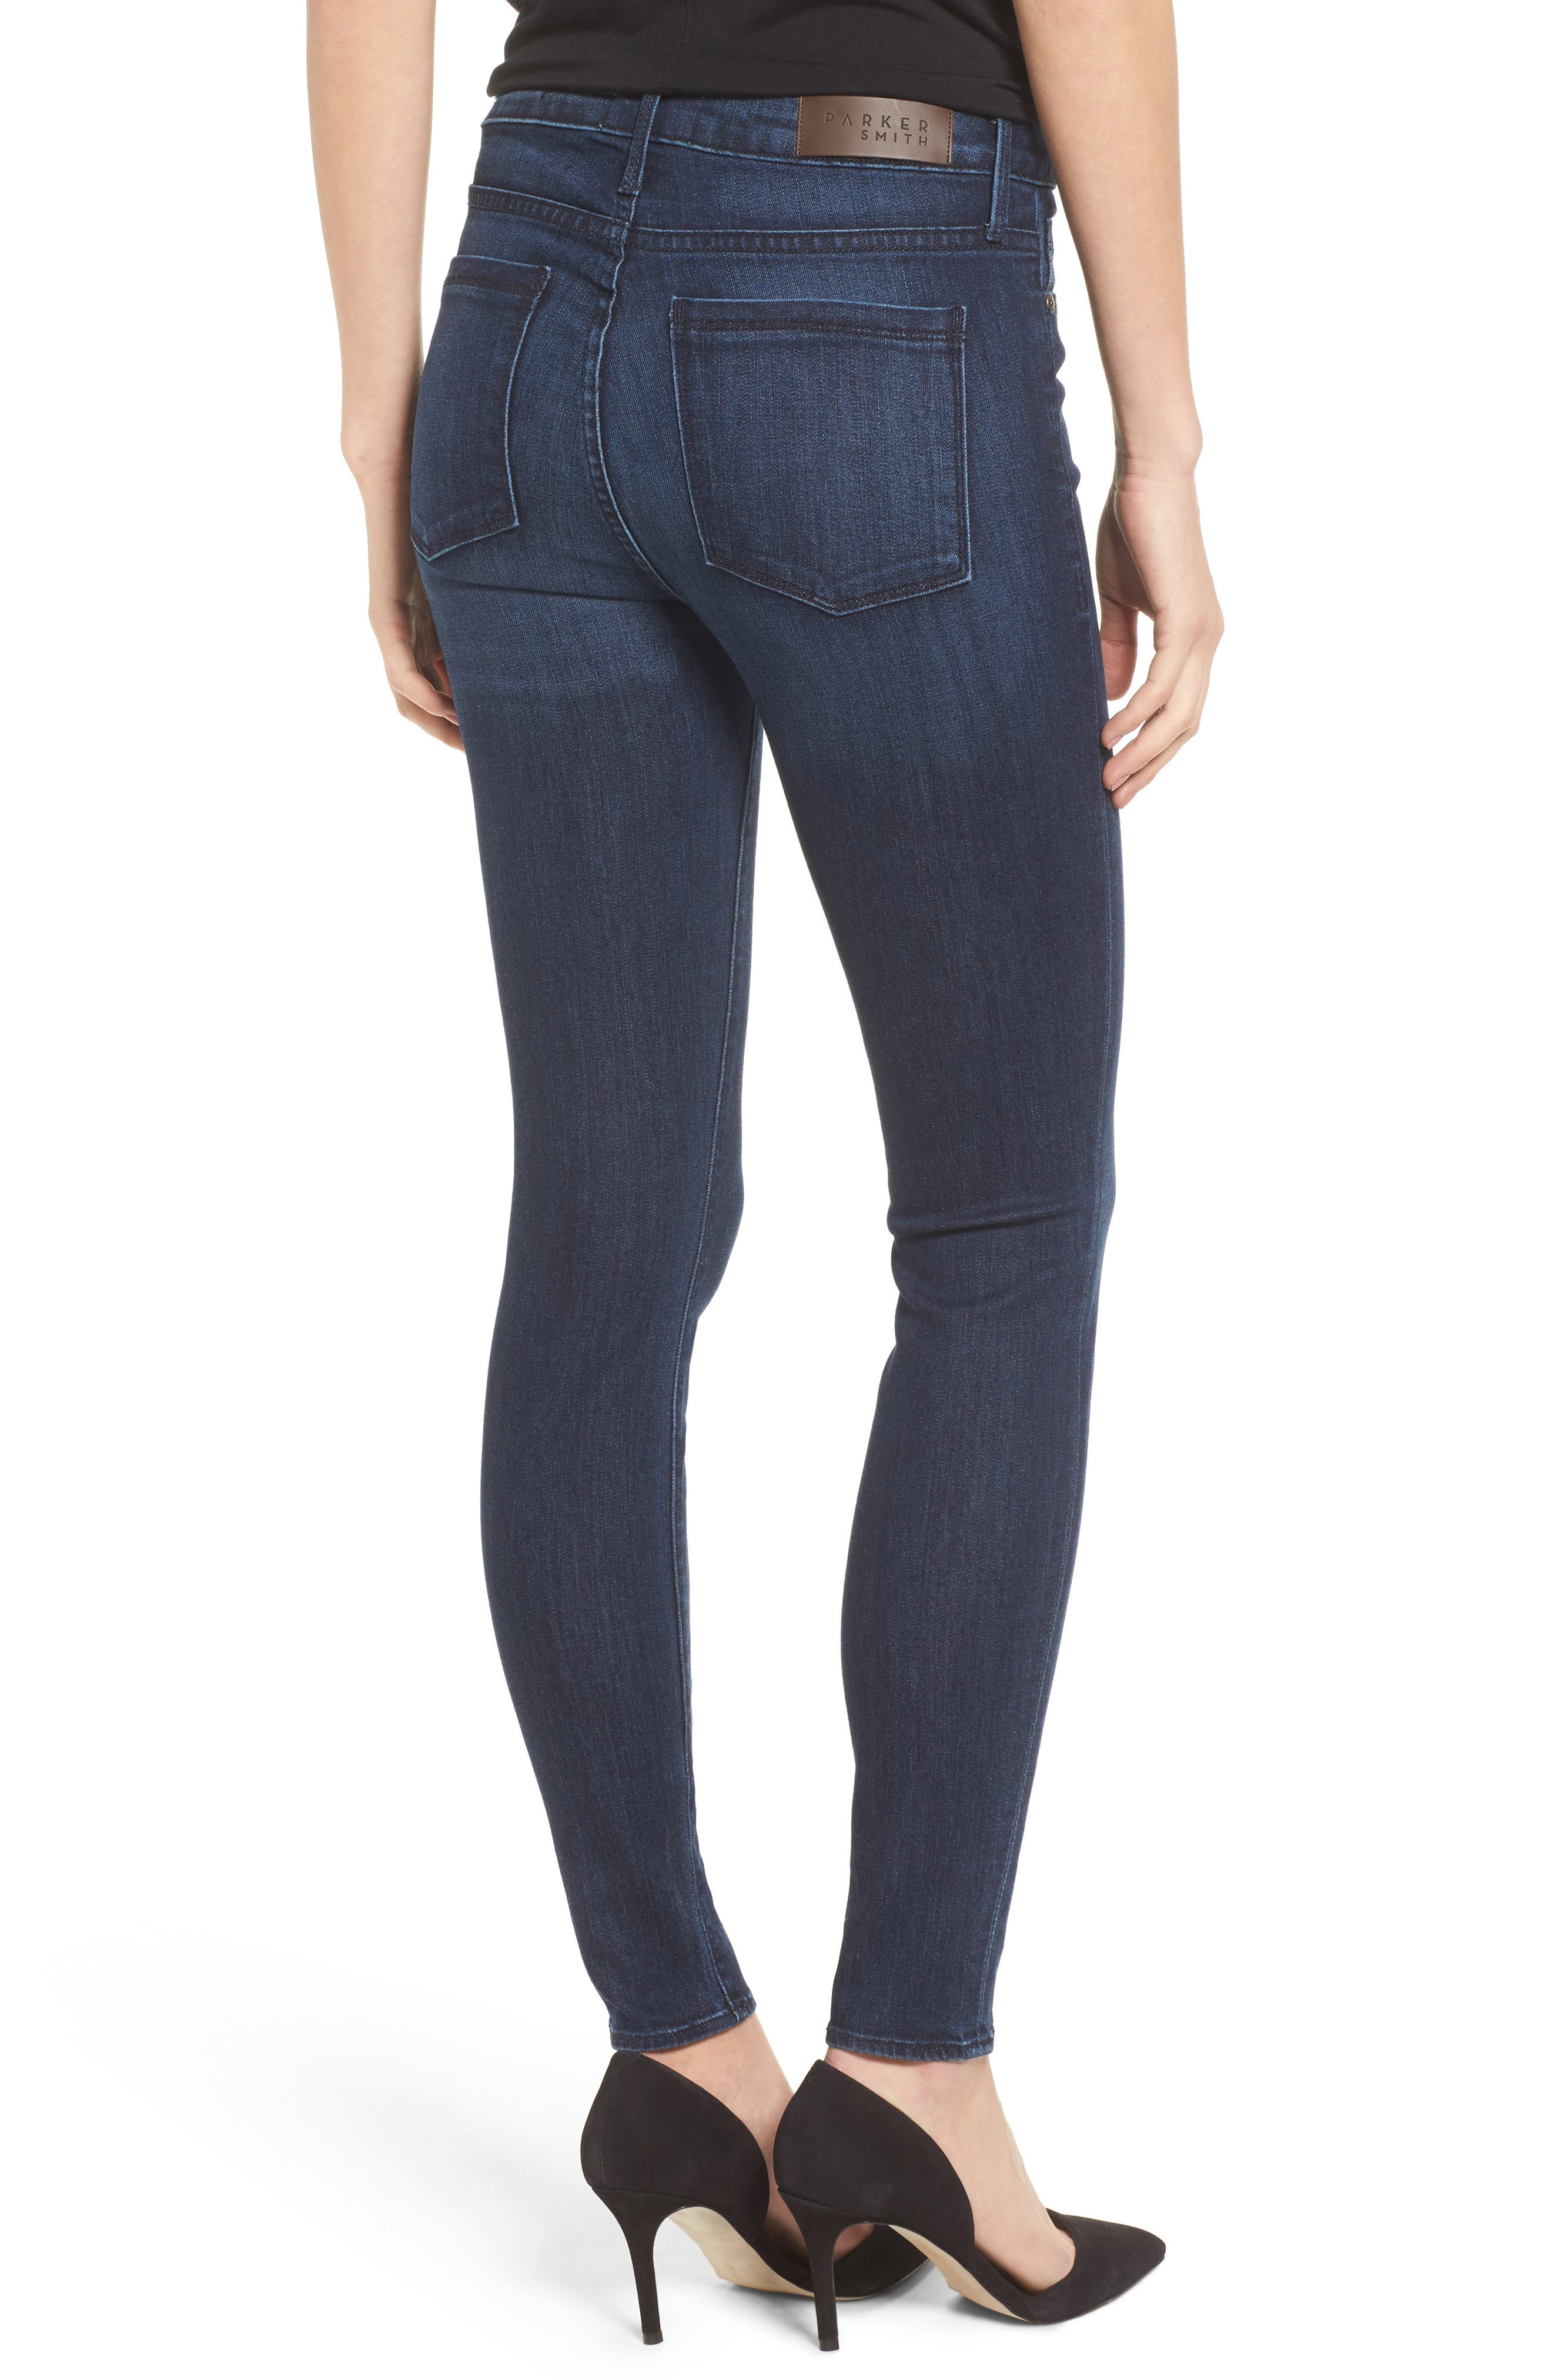 Alternate Image 2  - PARKER SMITH Bombshell High Waist Stretch Skinny Jeans (Baltic)